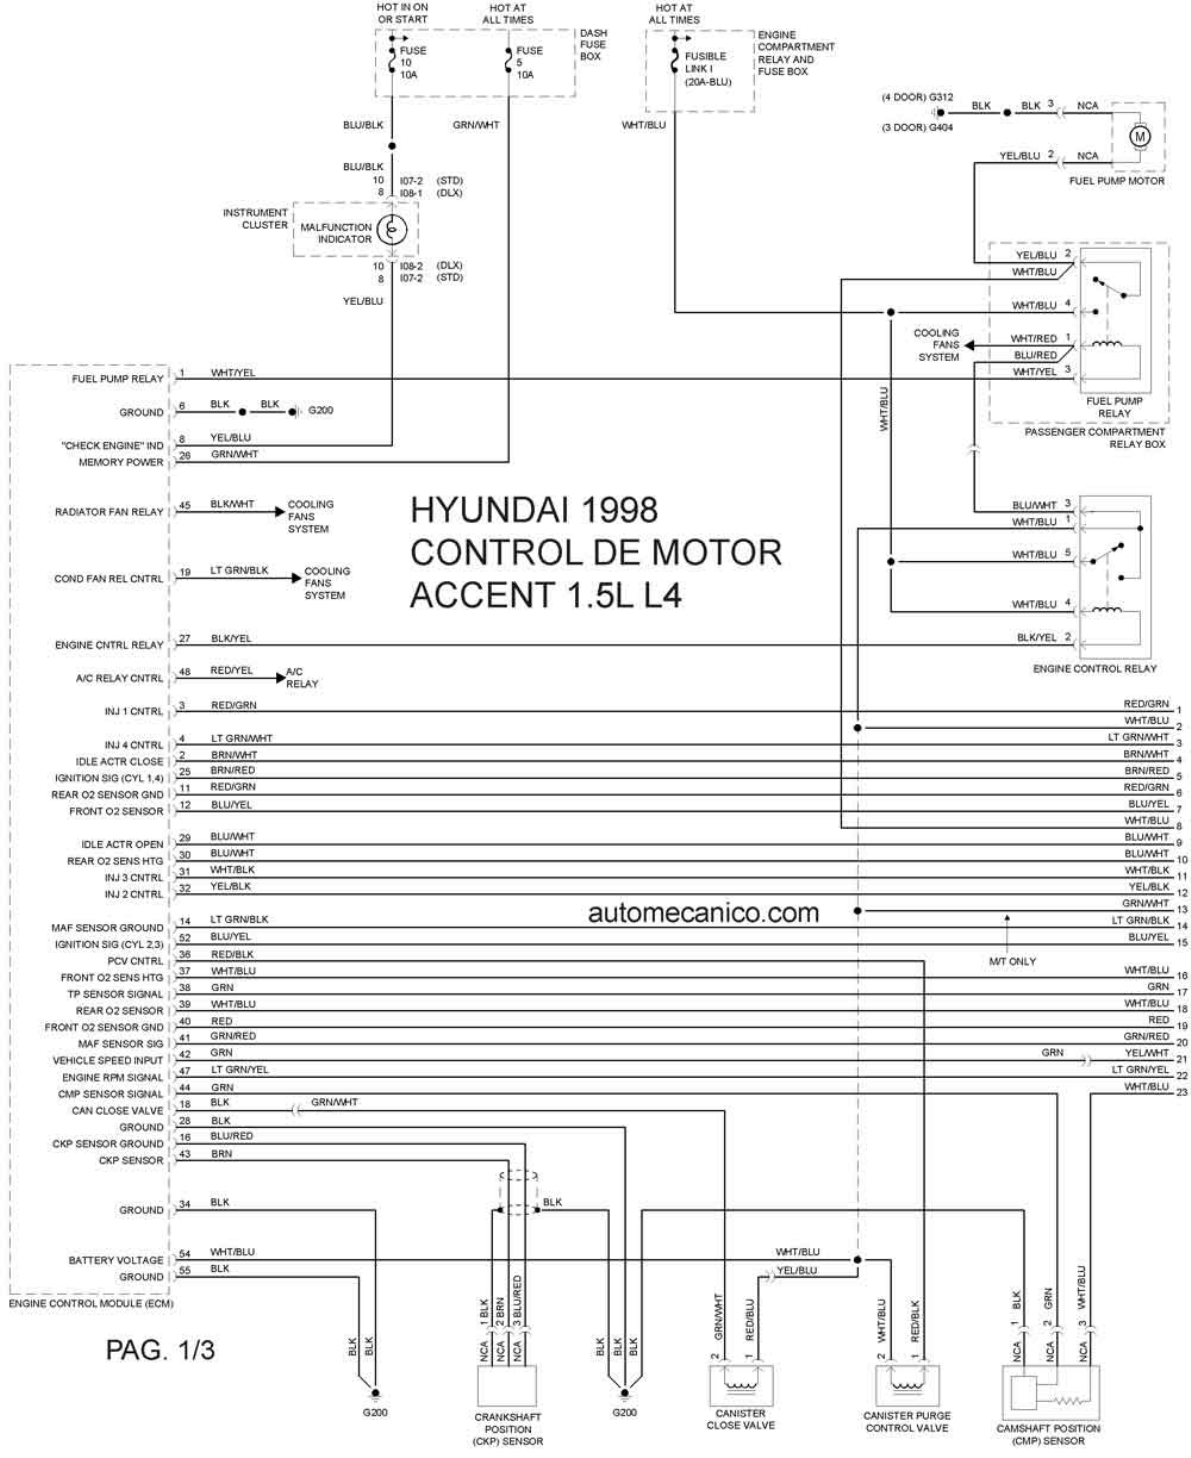 wiring diagram for hyundai excel 1998 wiring diagram 2000 hyundai elantra parts diagram 98 hyundai elantra wiring diagram #13